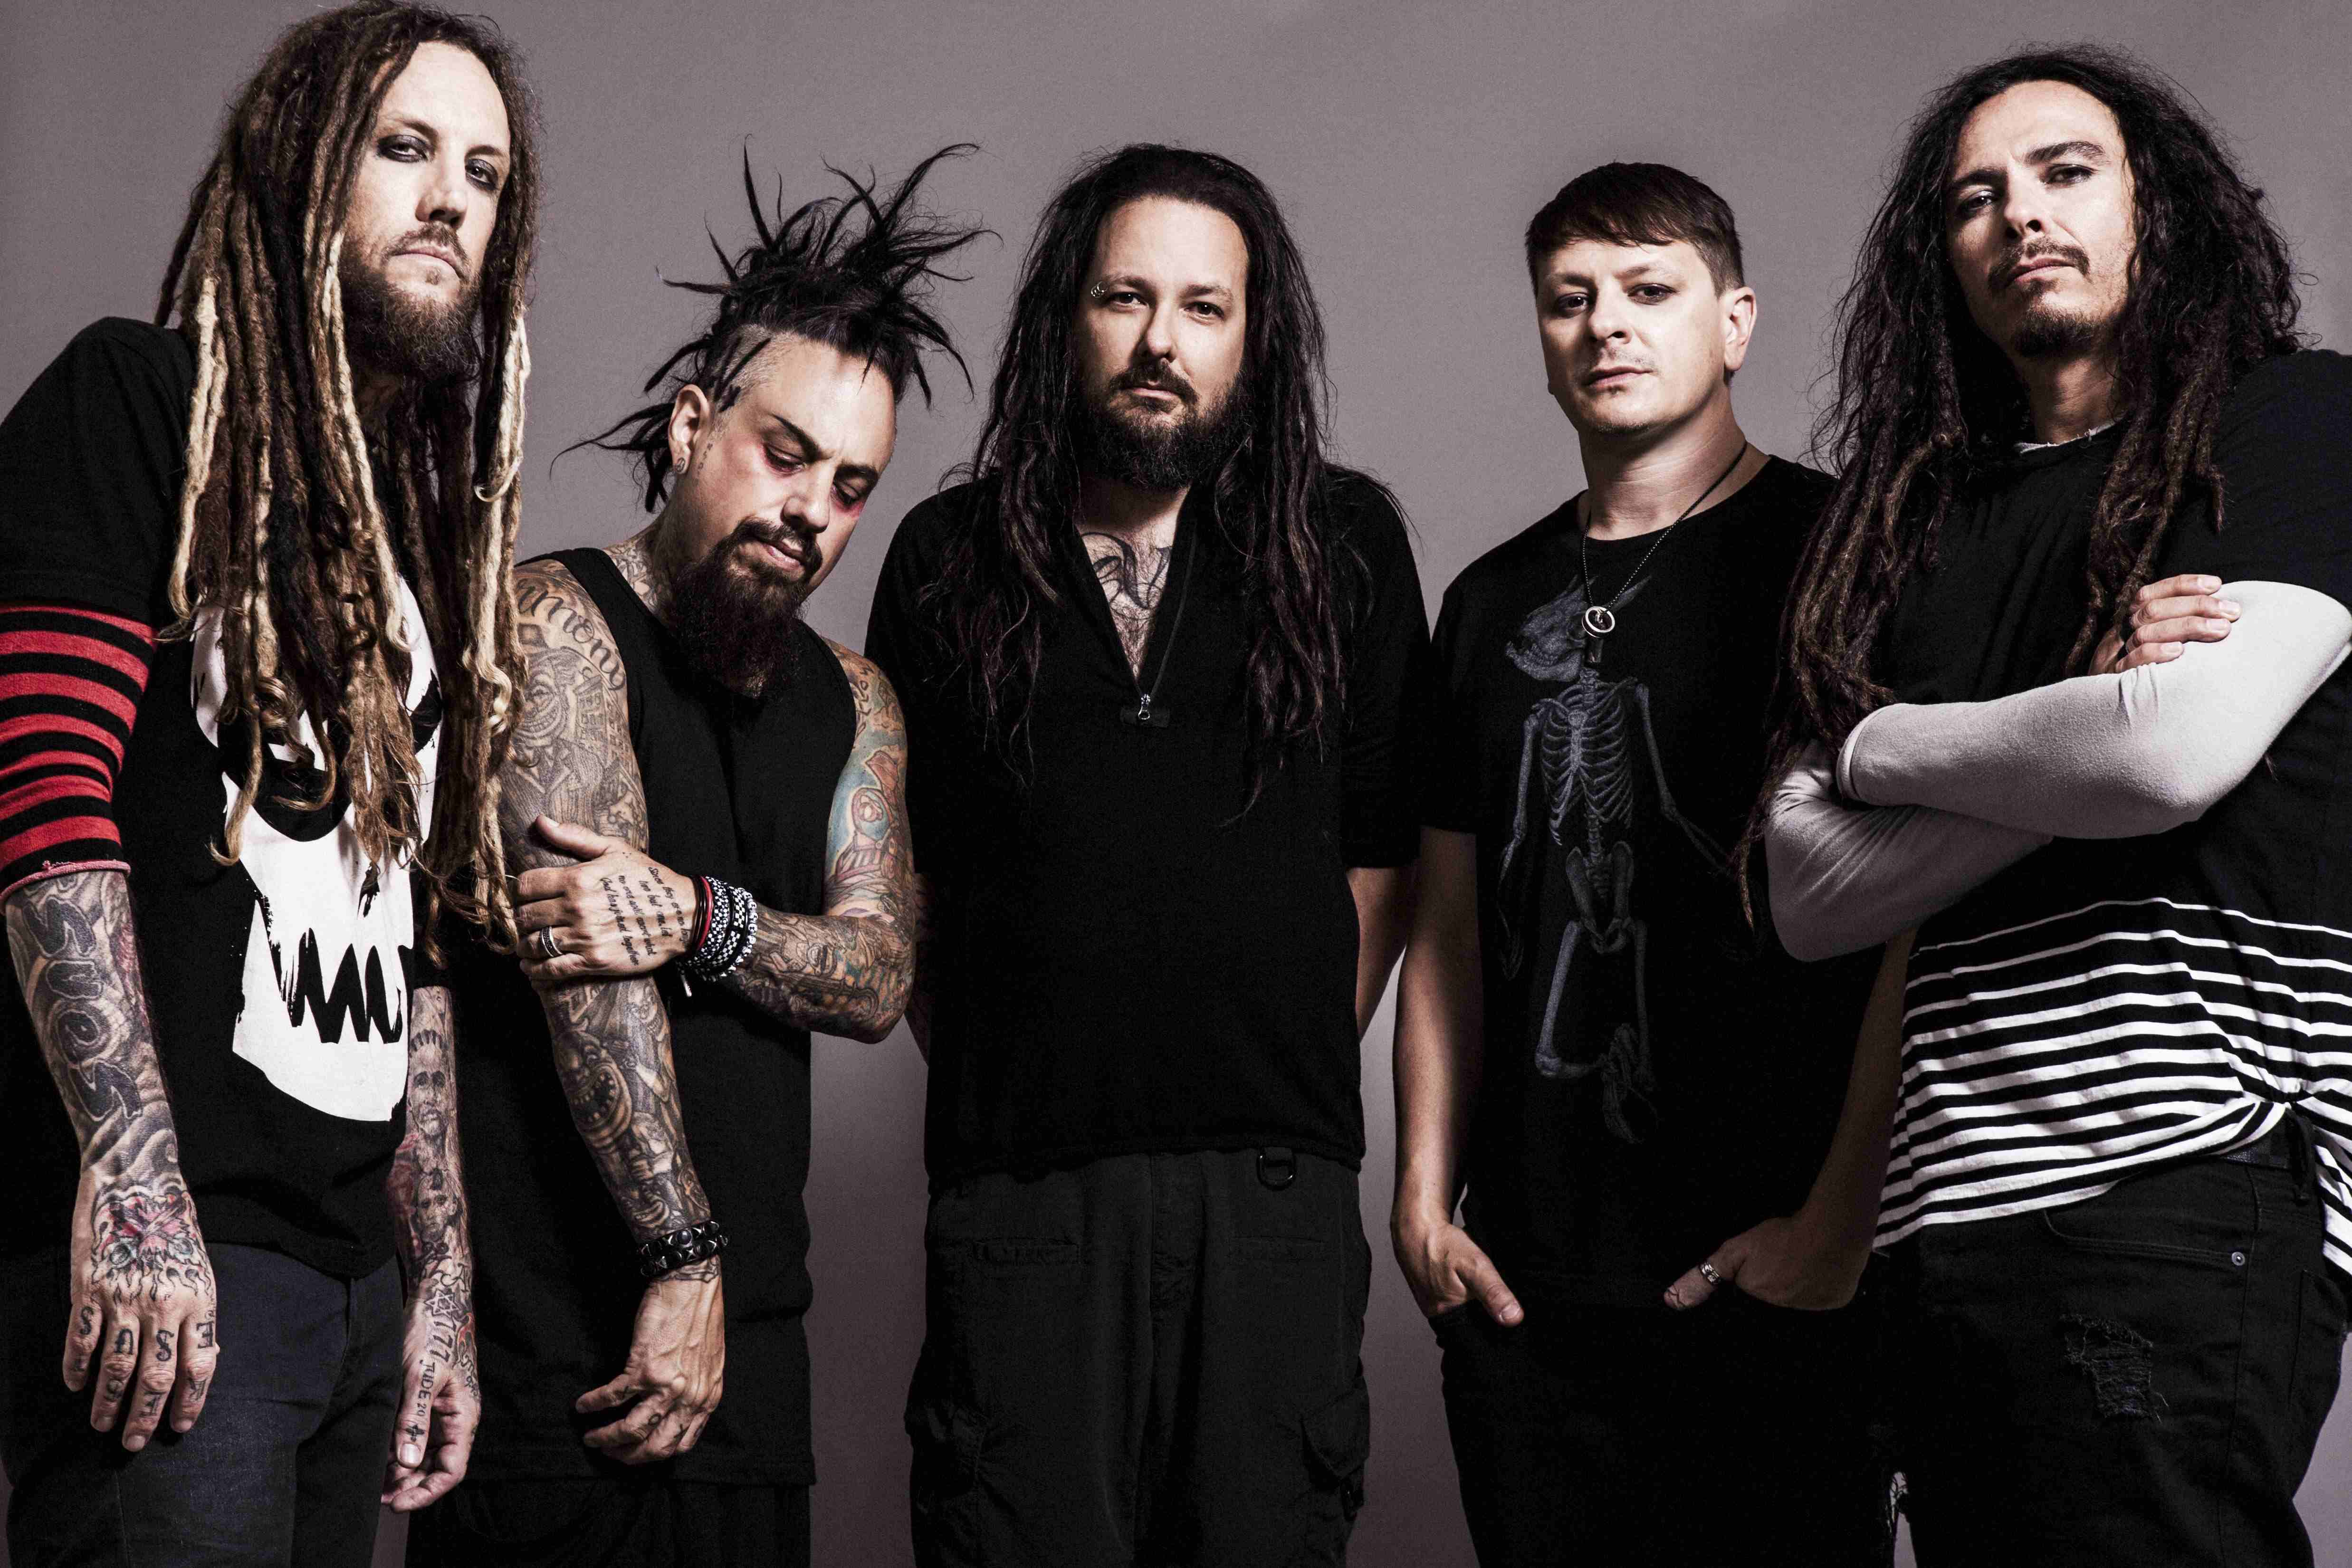 KORN & LIMP BIZKIT announce UK tour for December 2016